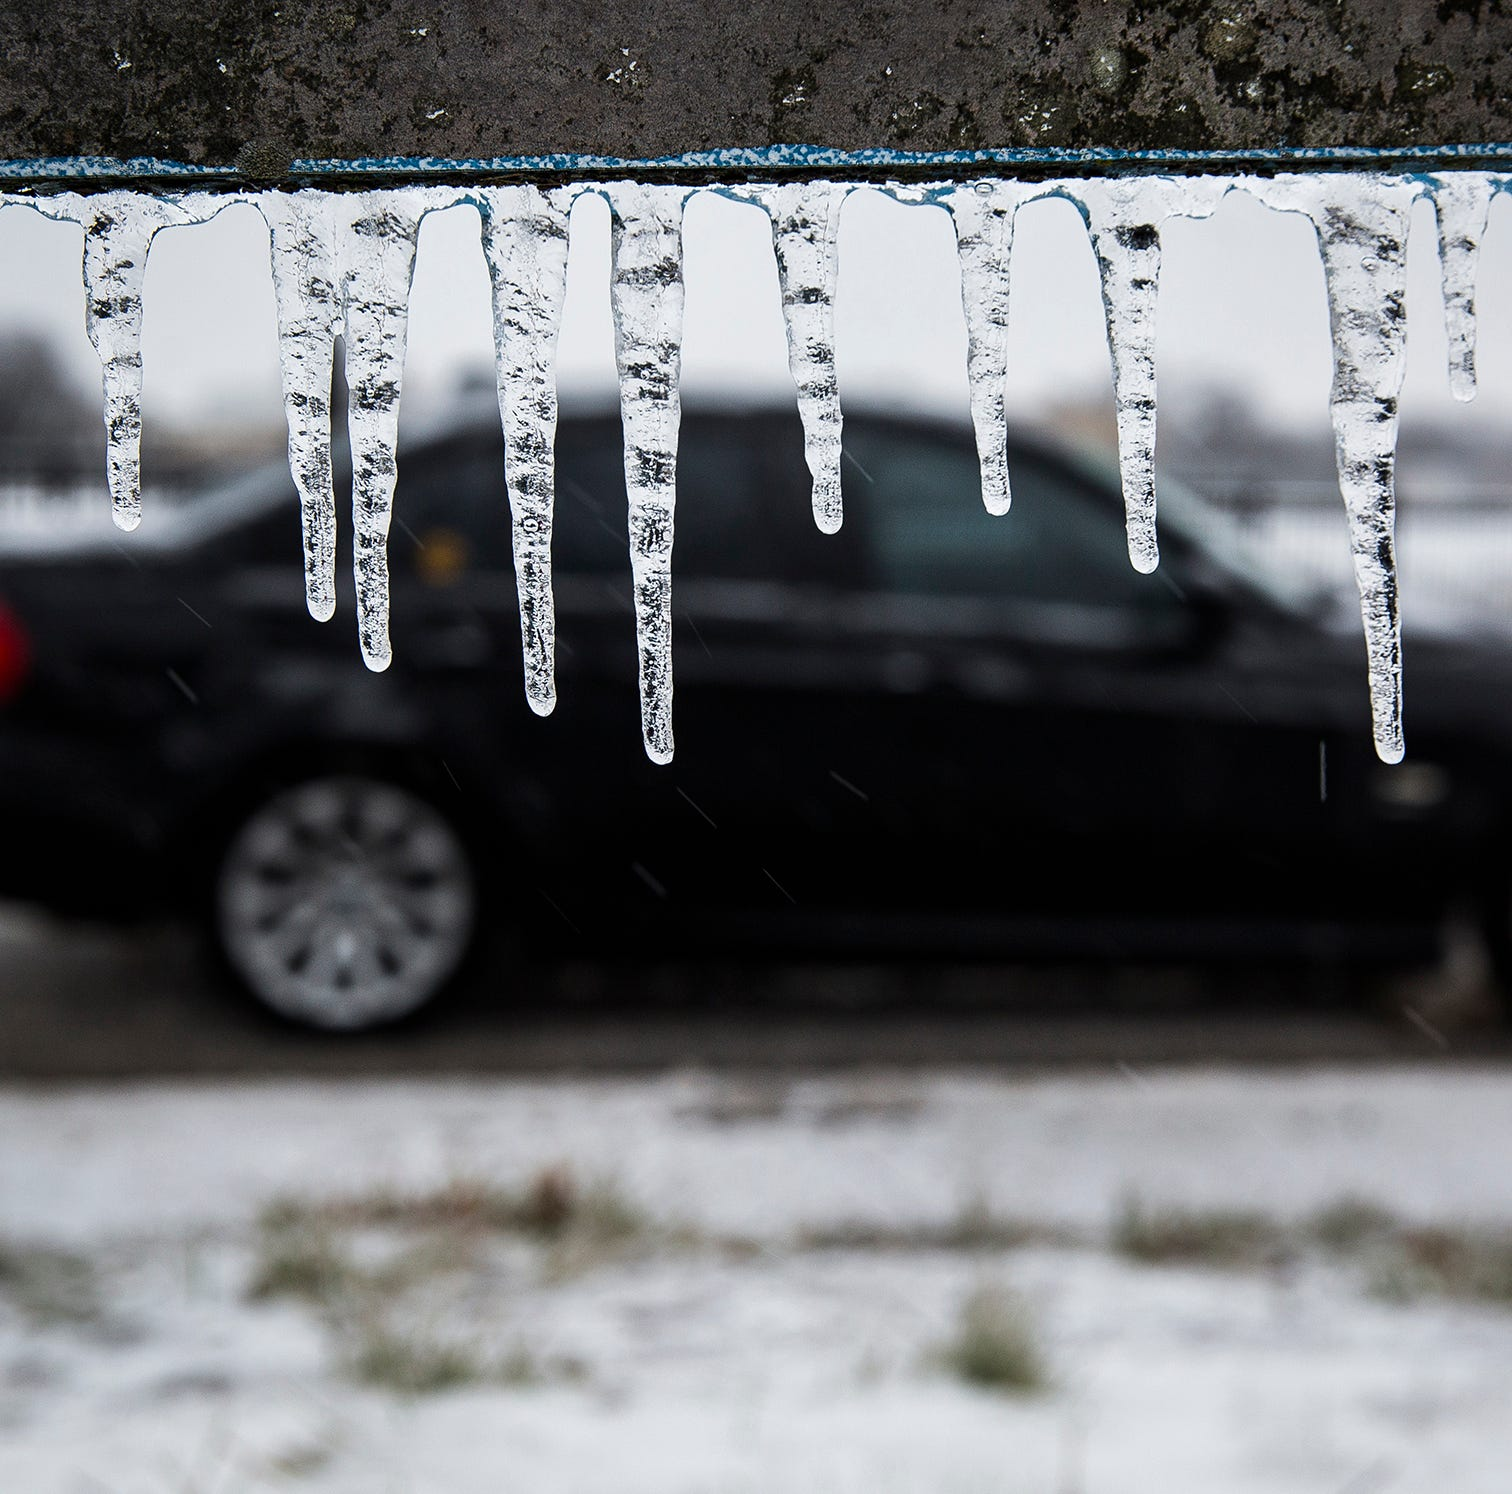 Wayne County issues travel advisory for freezing roads overnight